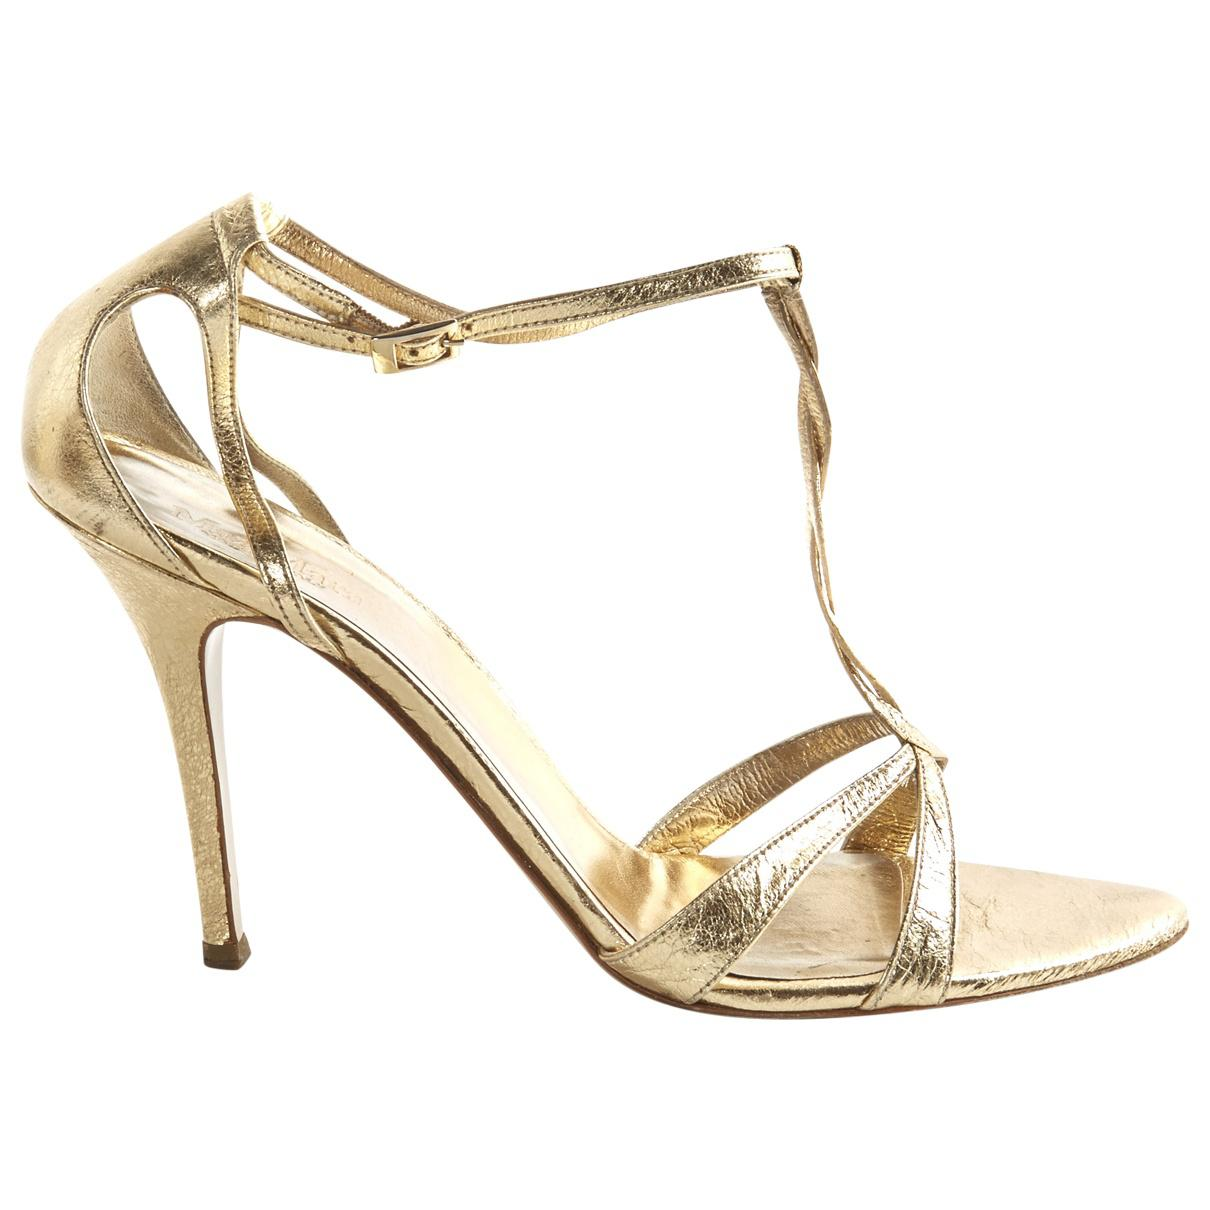 Pre-owned - Leather sandals Max Mara Xc1Y9LB